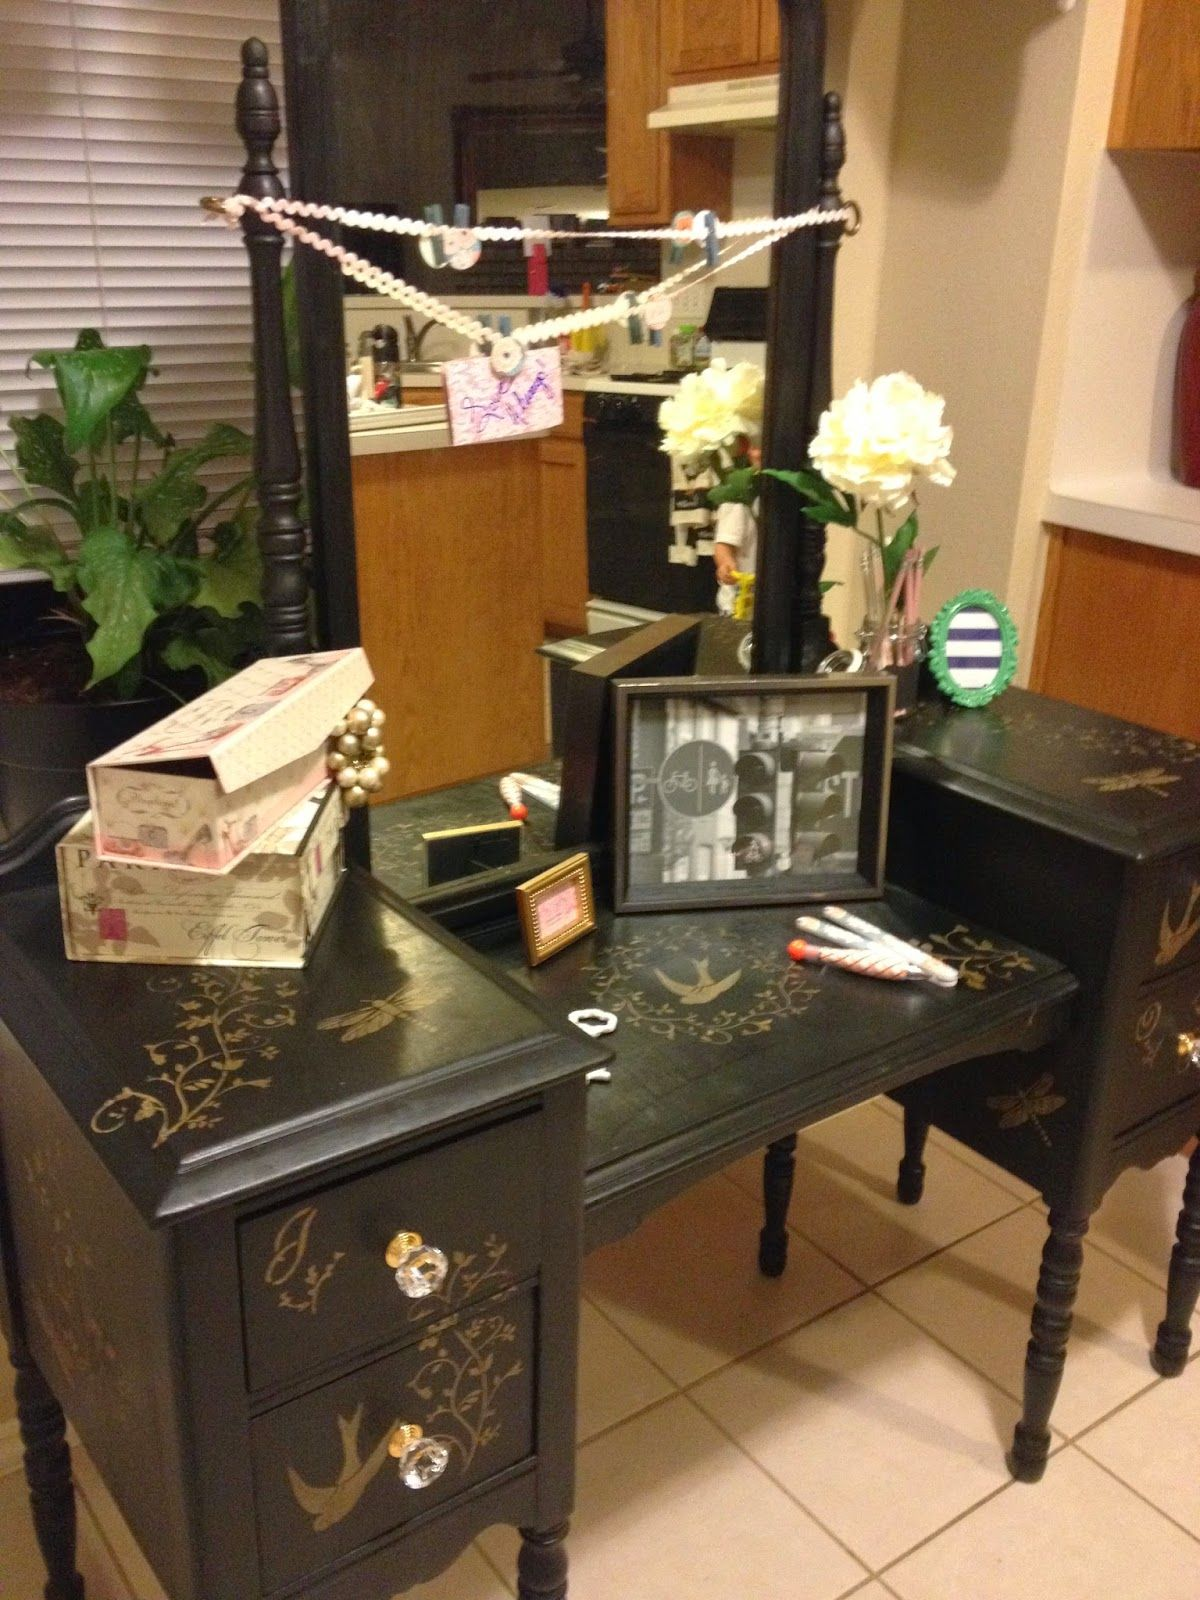 This is my grannyus vanity table that she used everyday she passed